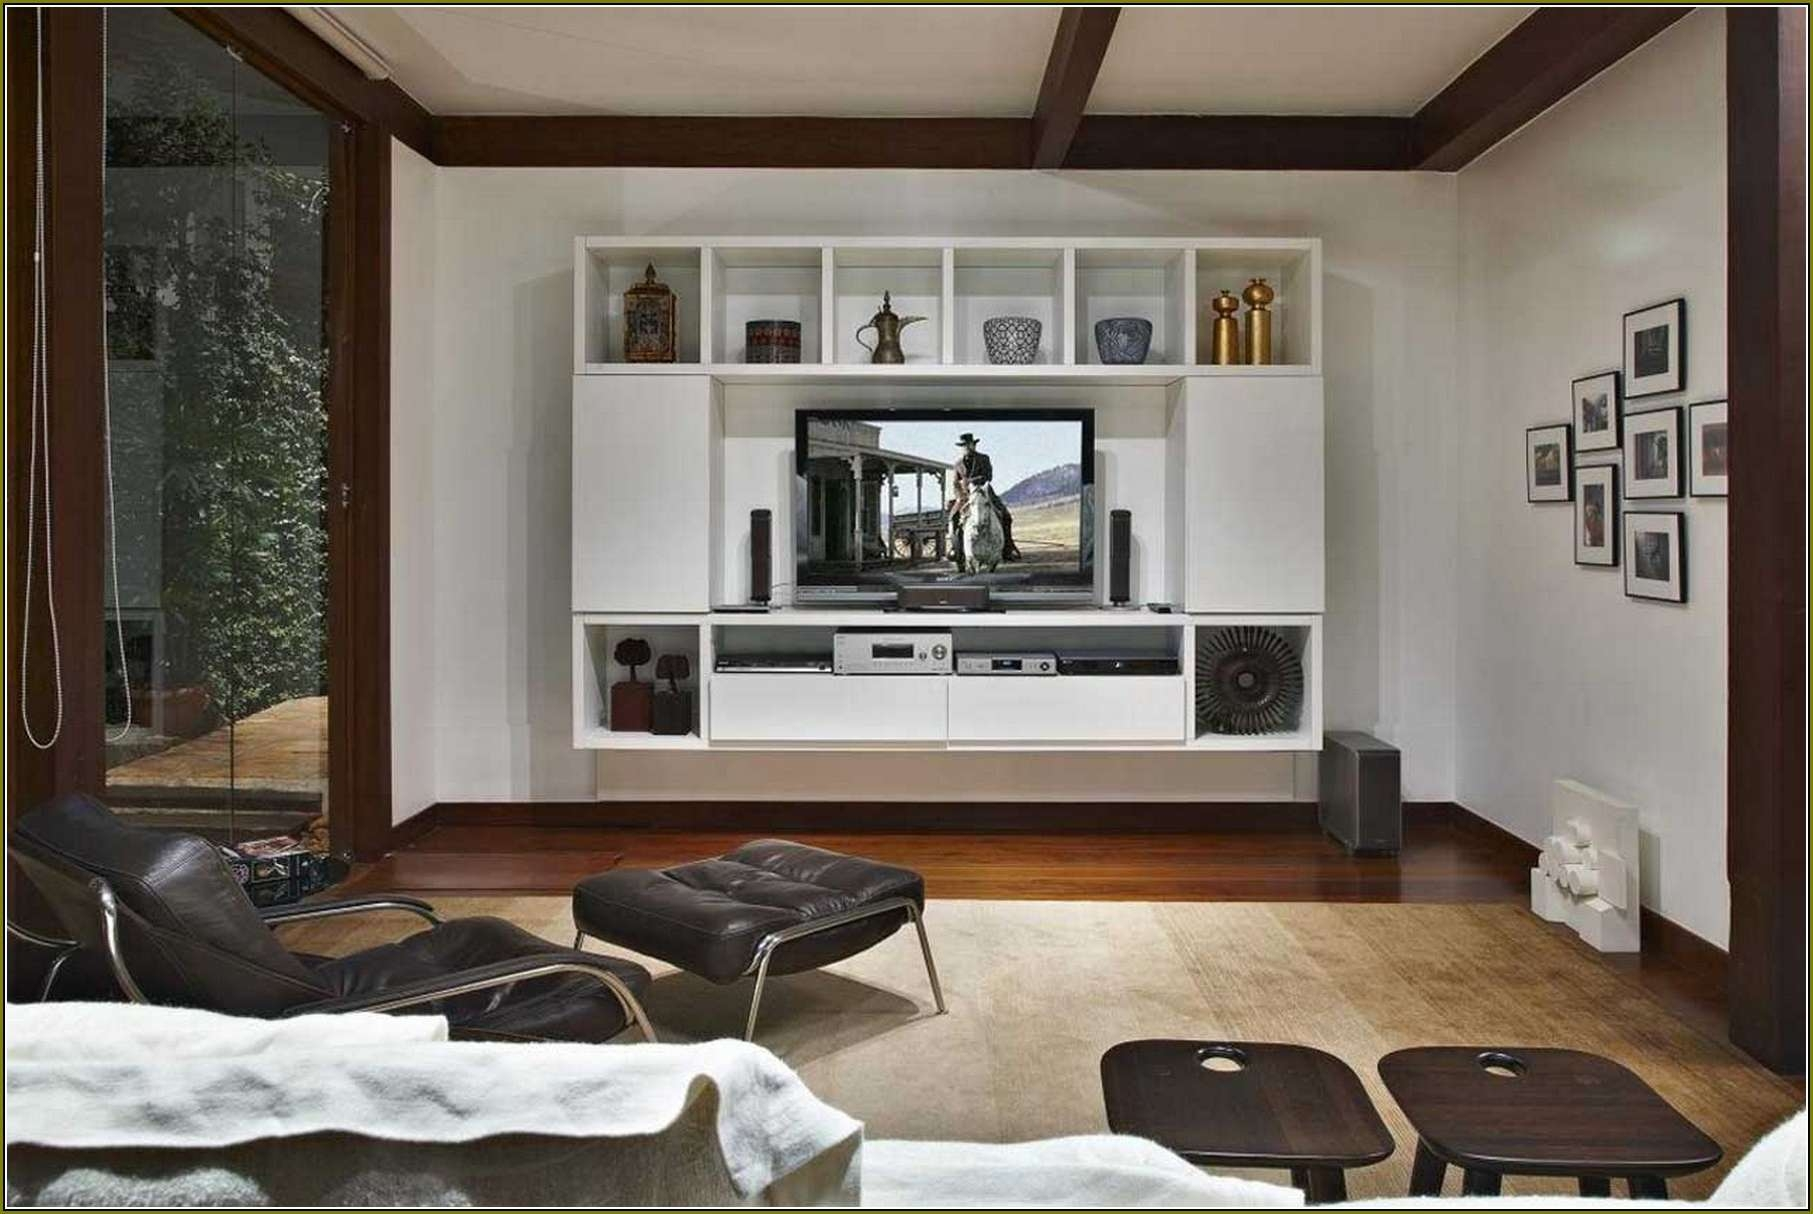 Flat Screen Tv Cabinet Ideas | Home Design Ideas With Wall Mounted Tv Cabinets For Flat Screens (View 3 of 20)